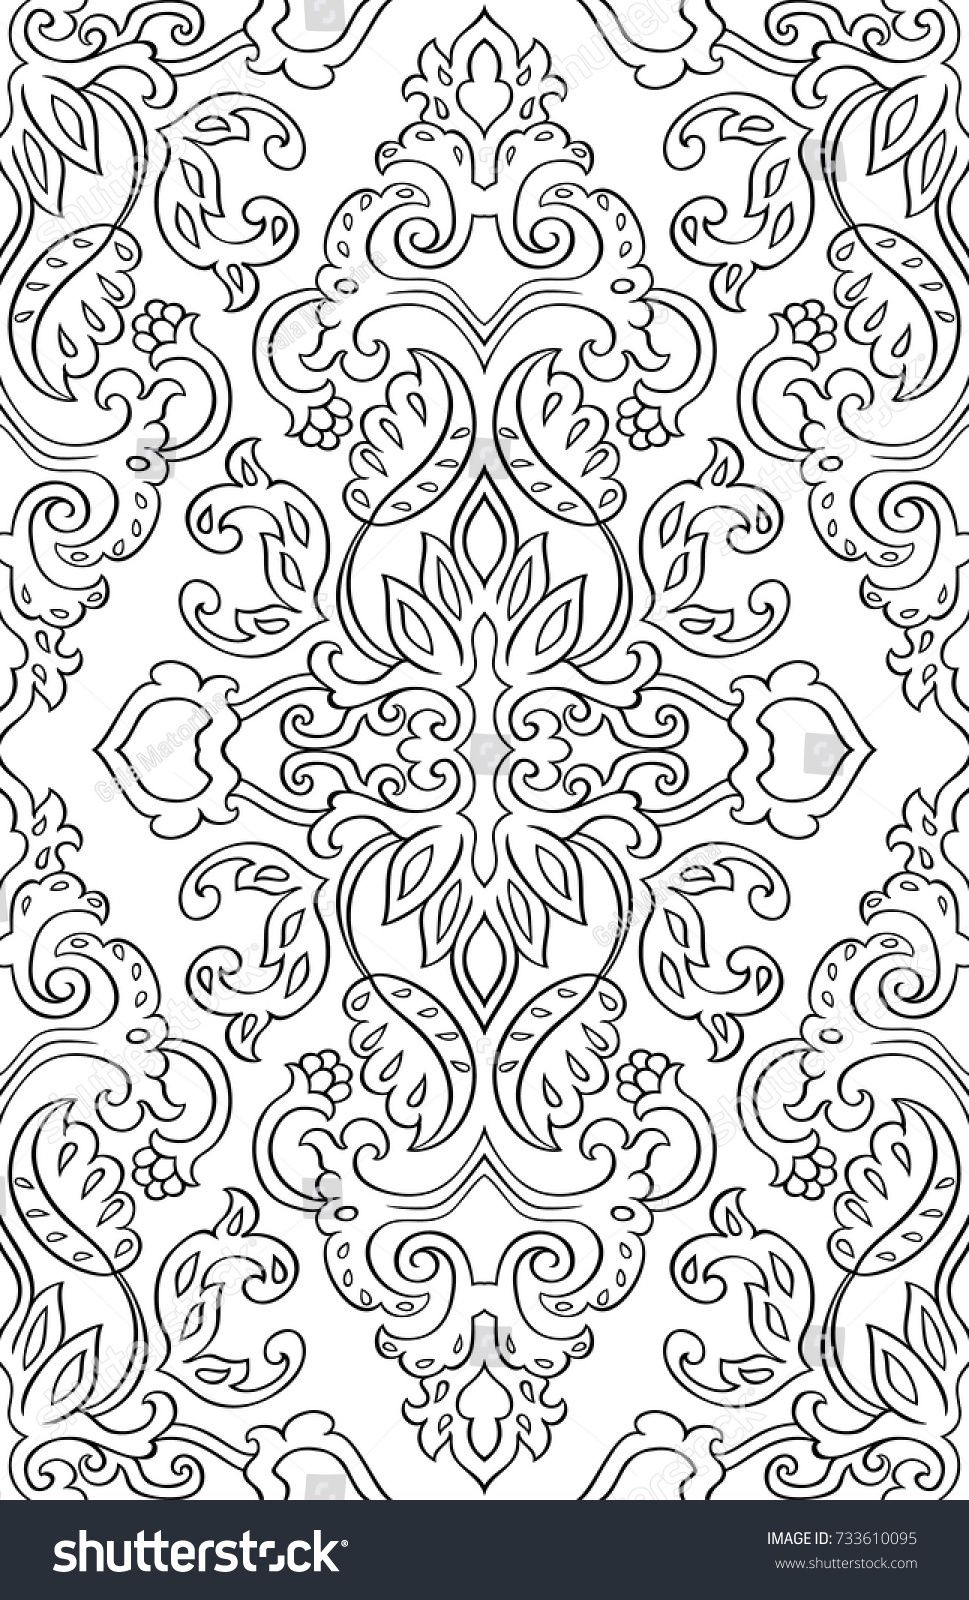 Floral pattern with damask seamless filigree ornament black and